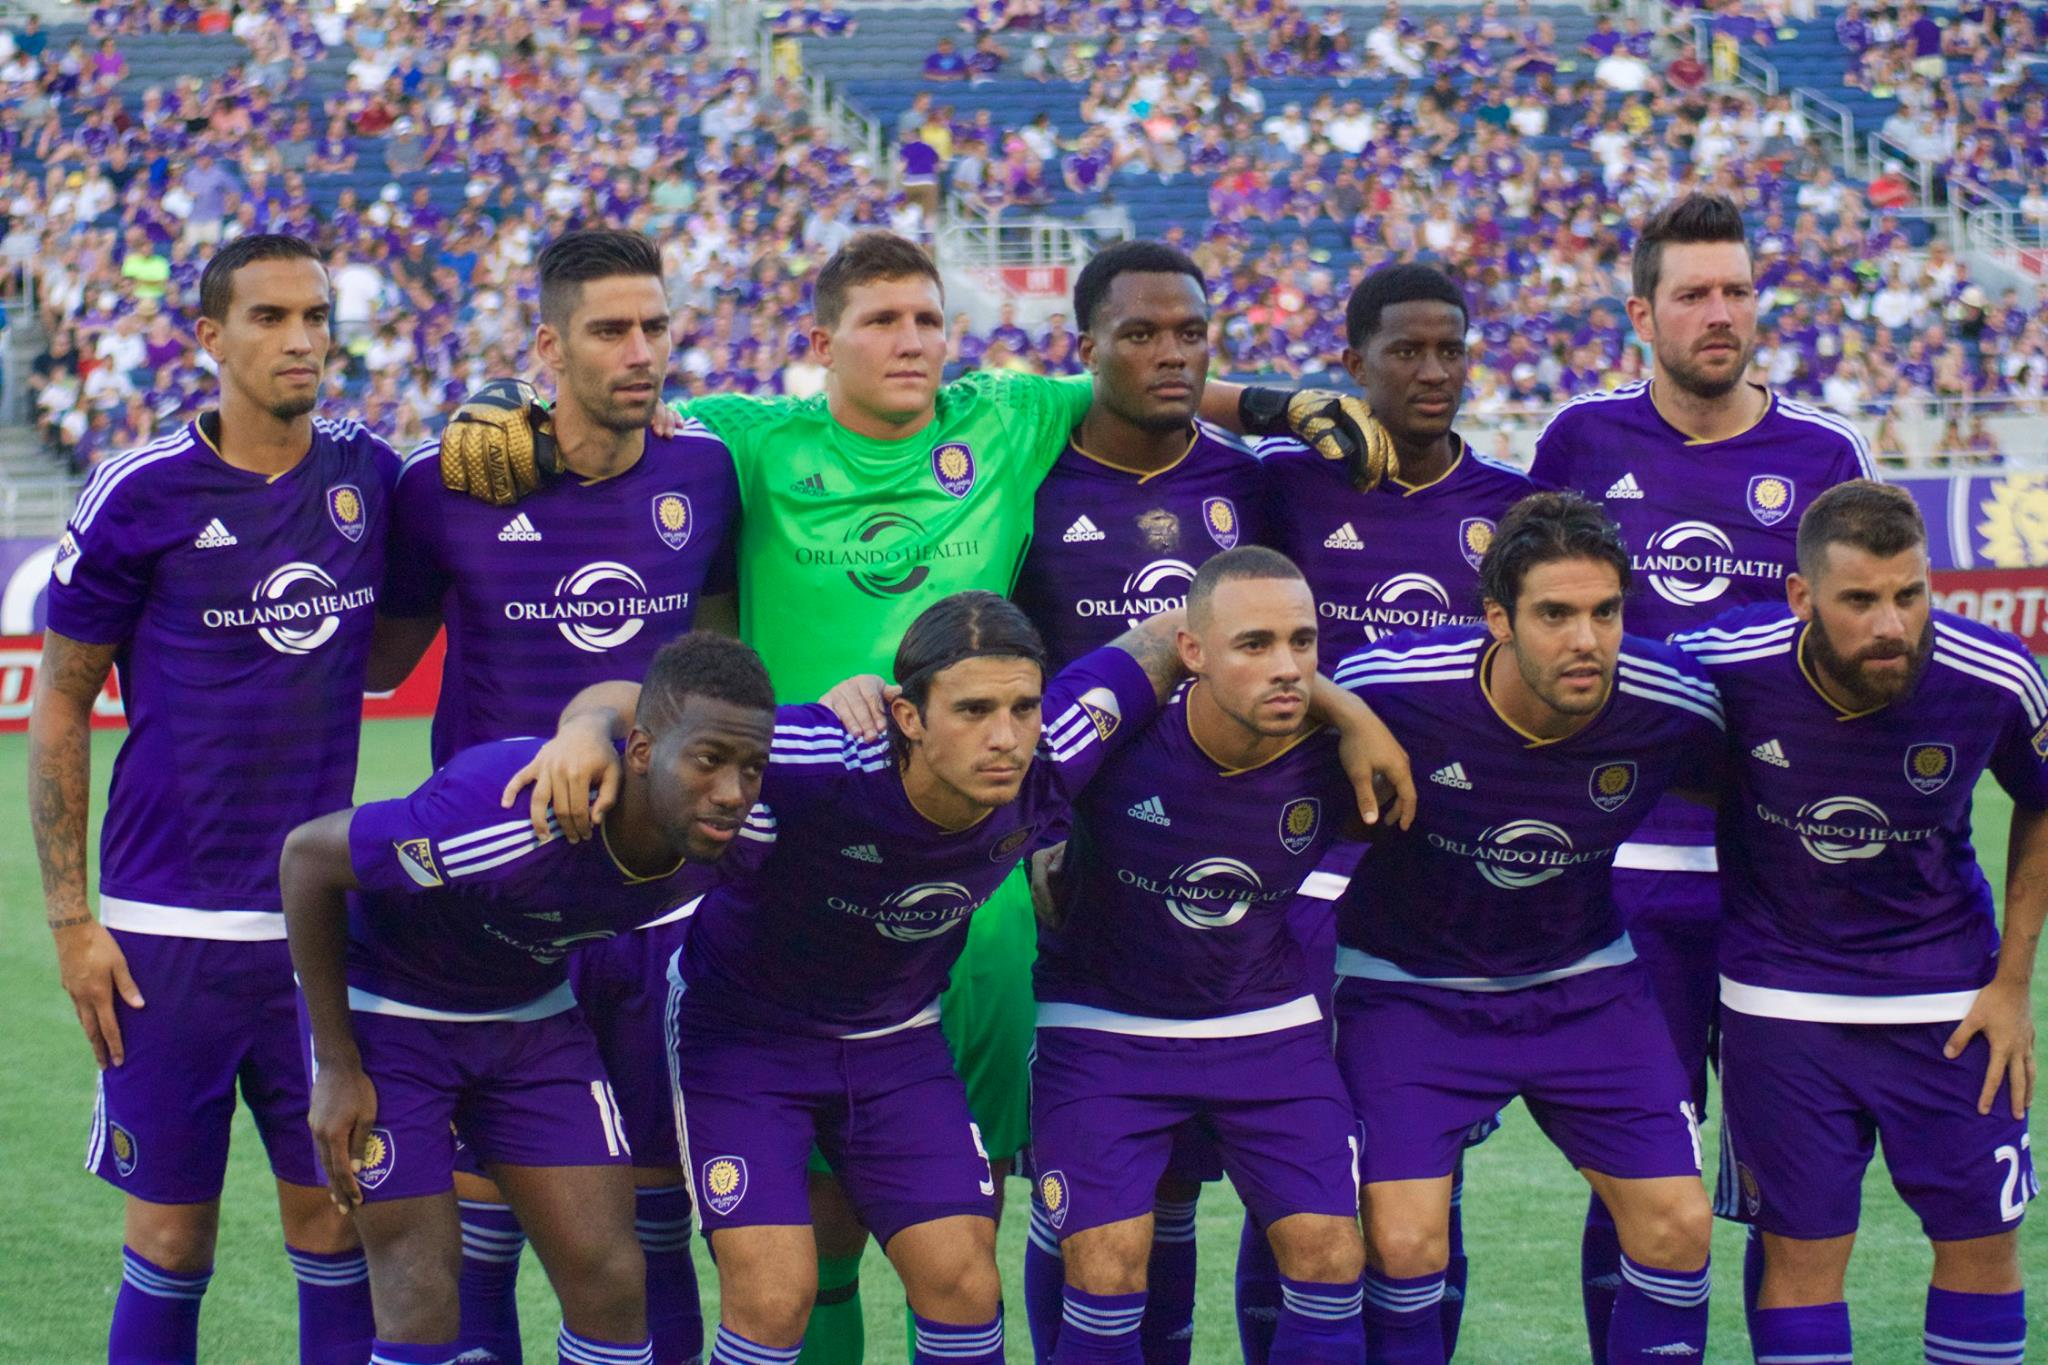 ORLANDO (FNN SPORTS): Orlando City Soccer Club to host Special Olympics team Thursday. Photo: Florida National News.